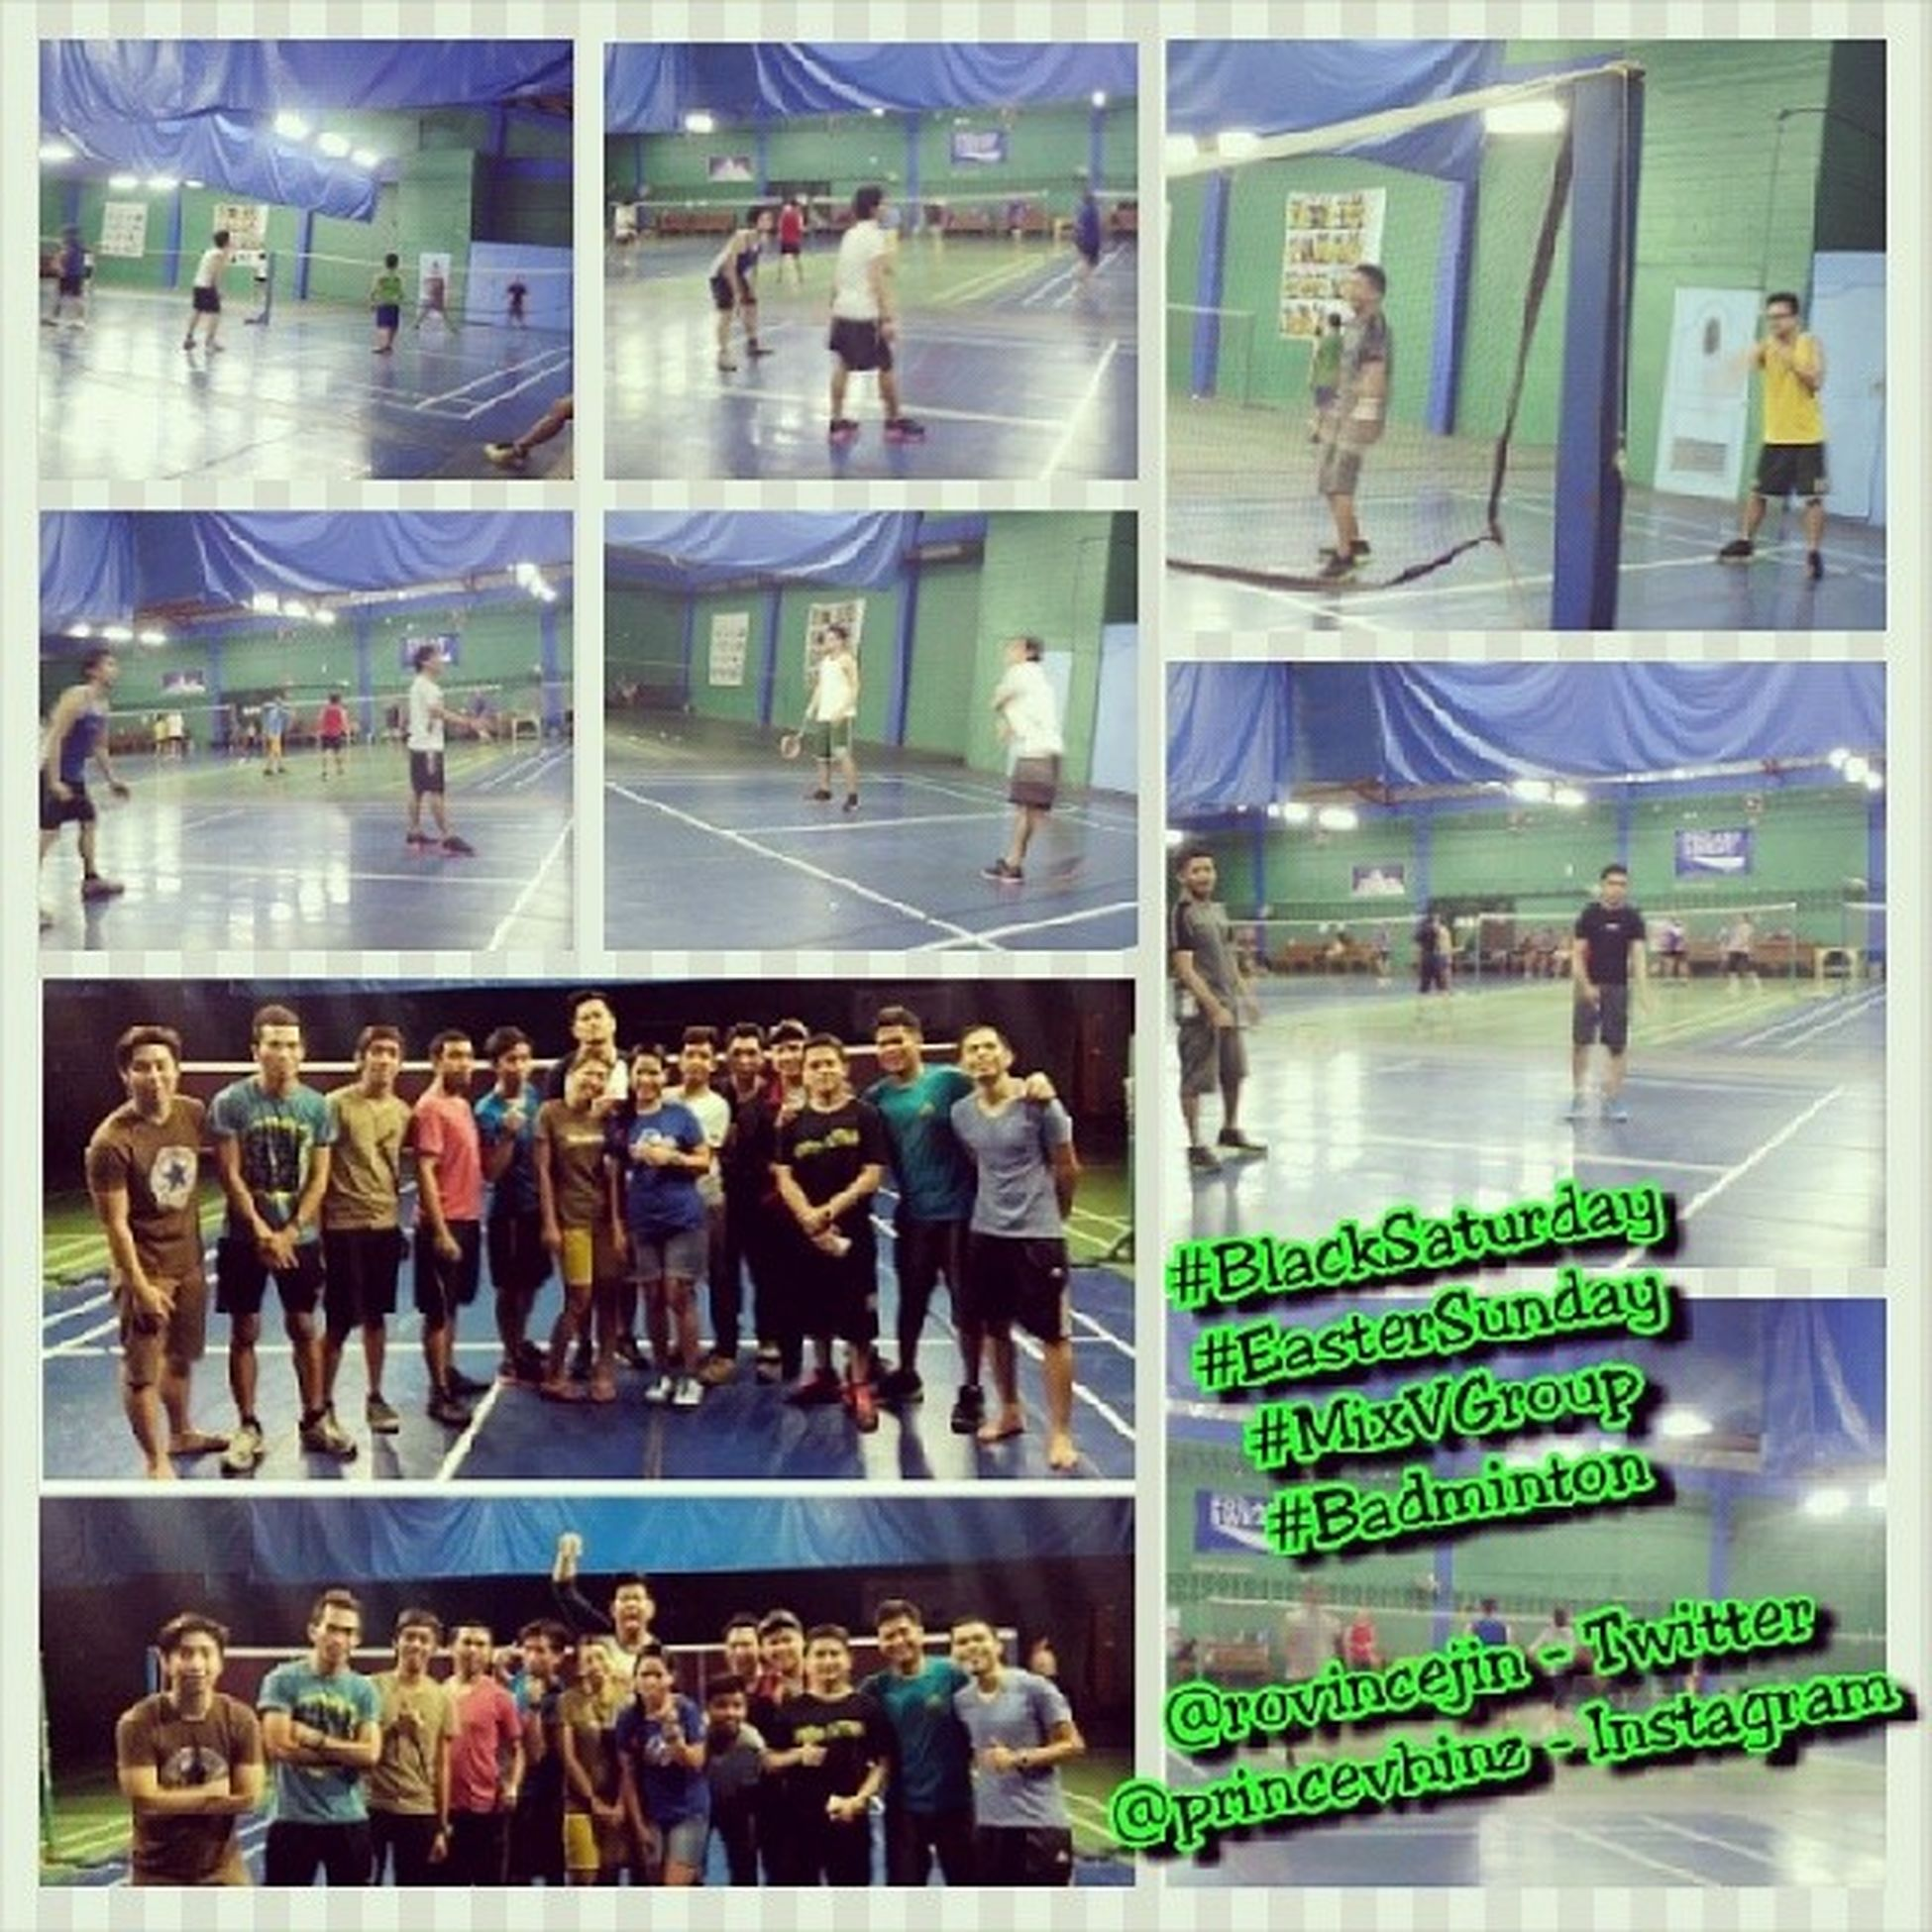 Blacksaturday Eastersunday MixVGroup Badminton